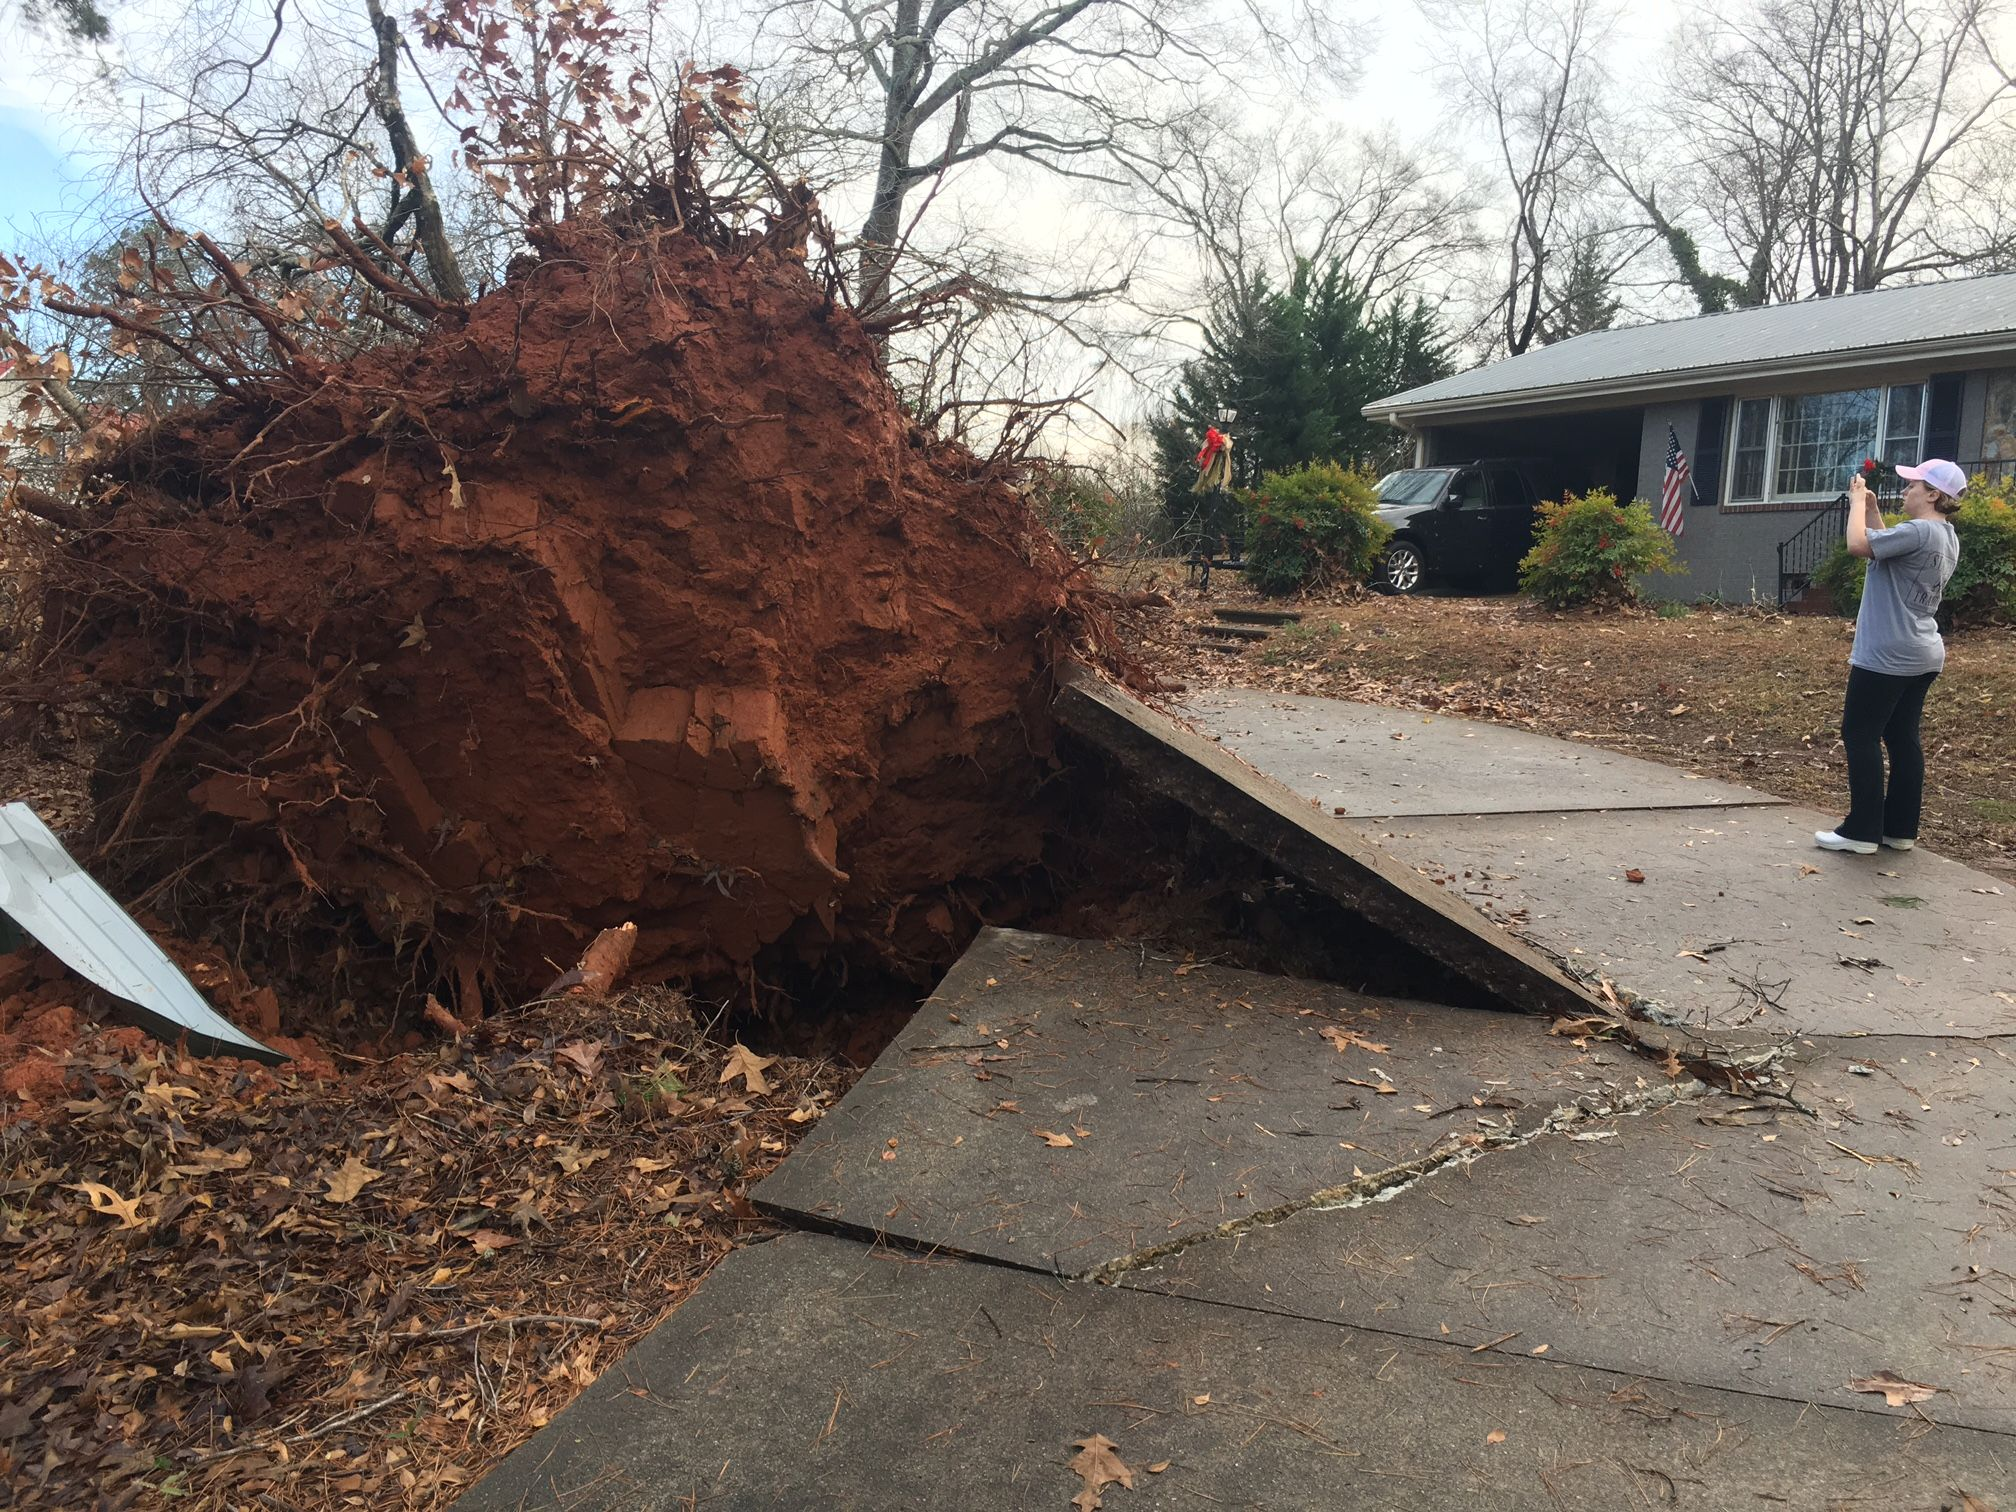 Homes damaged, trees and power lines down after storm